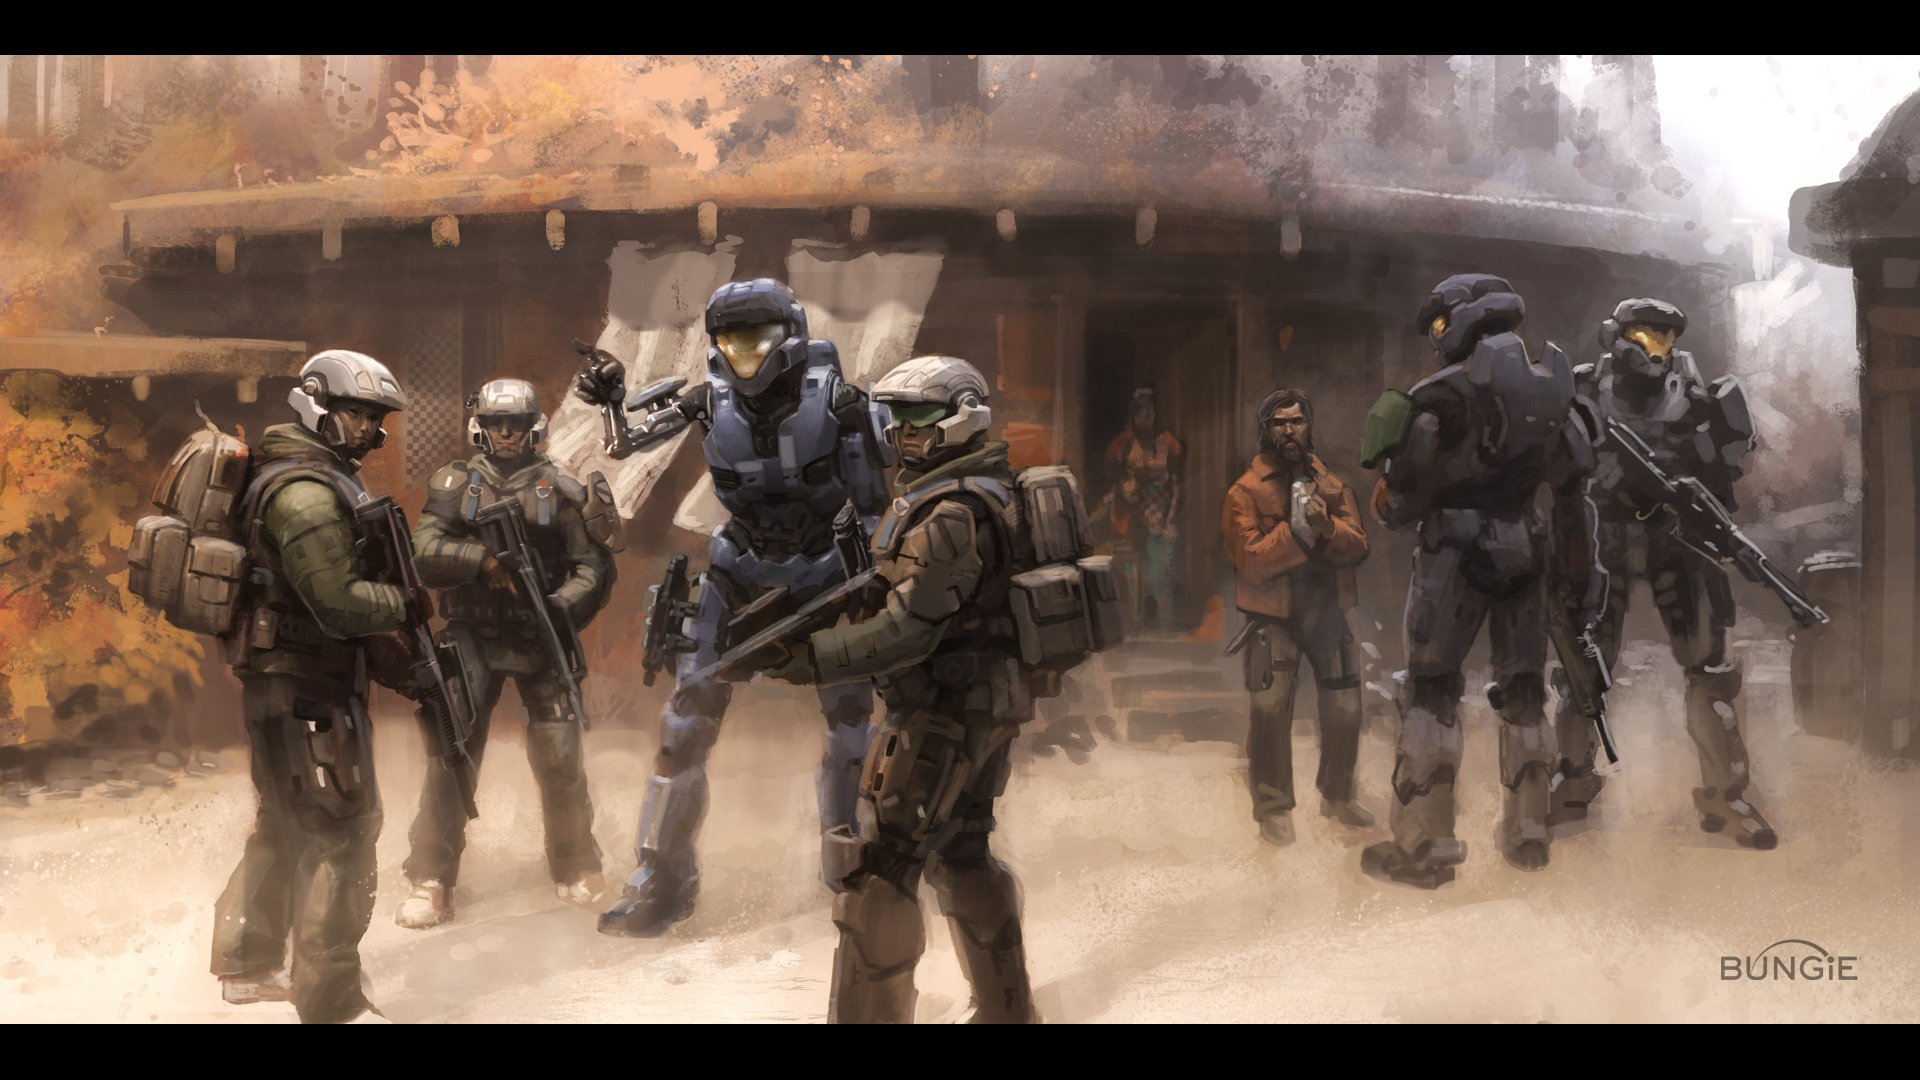 Video Game - Halo  Soldier Spartan Game Wallpaper